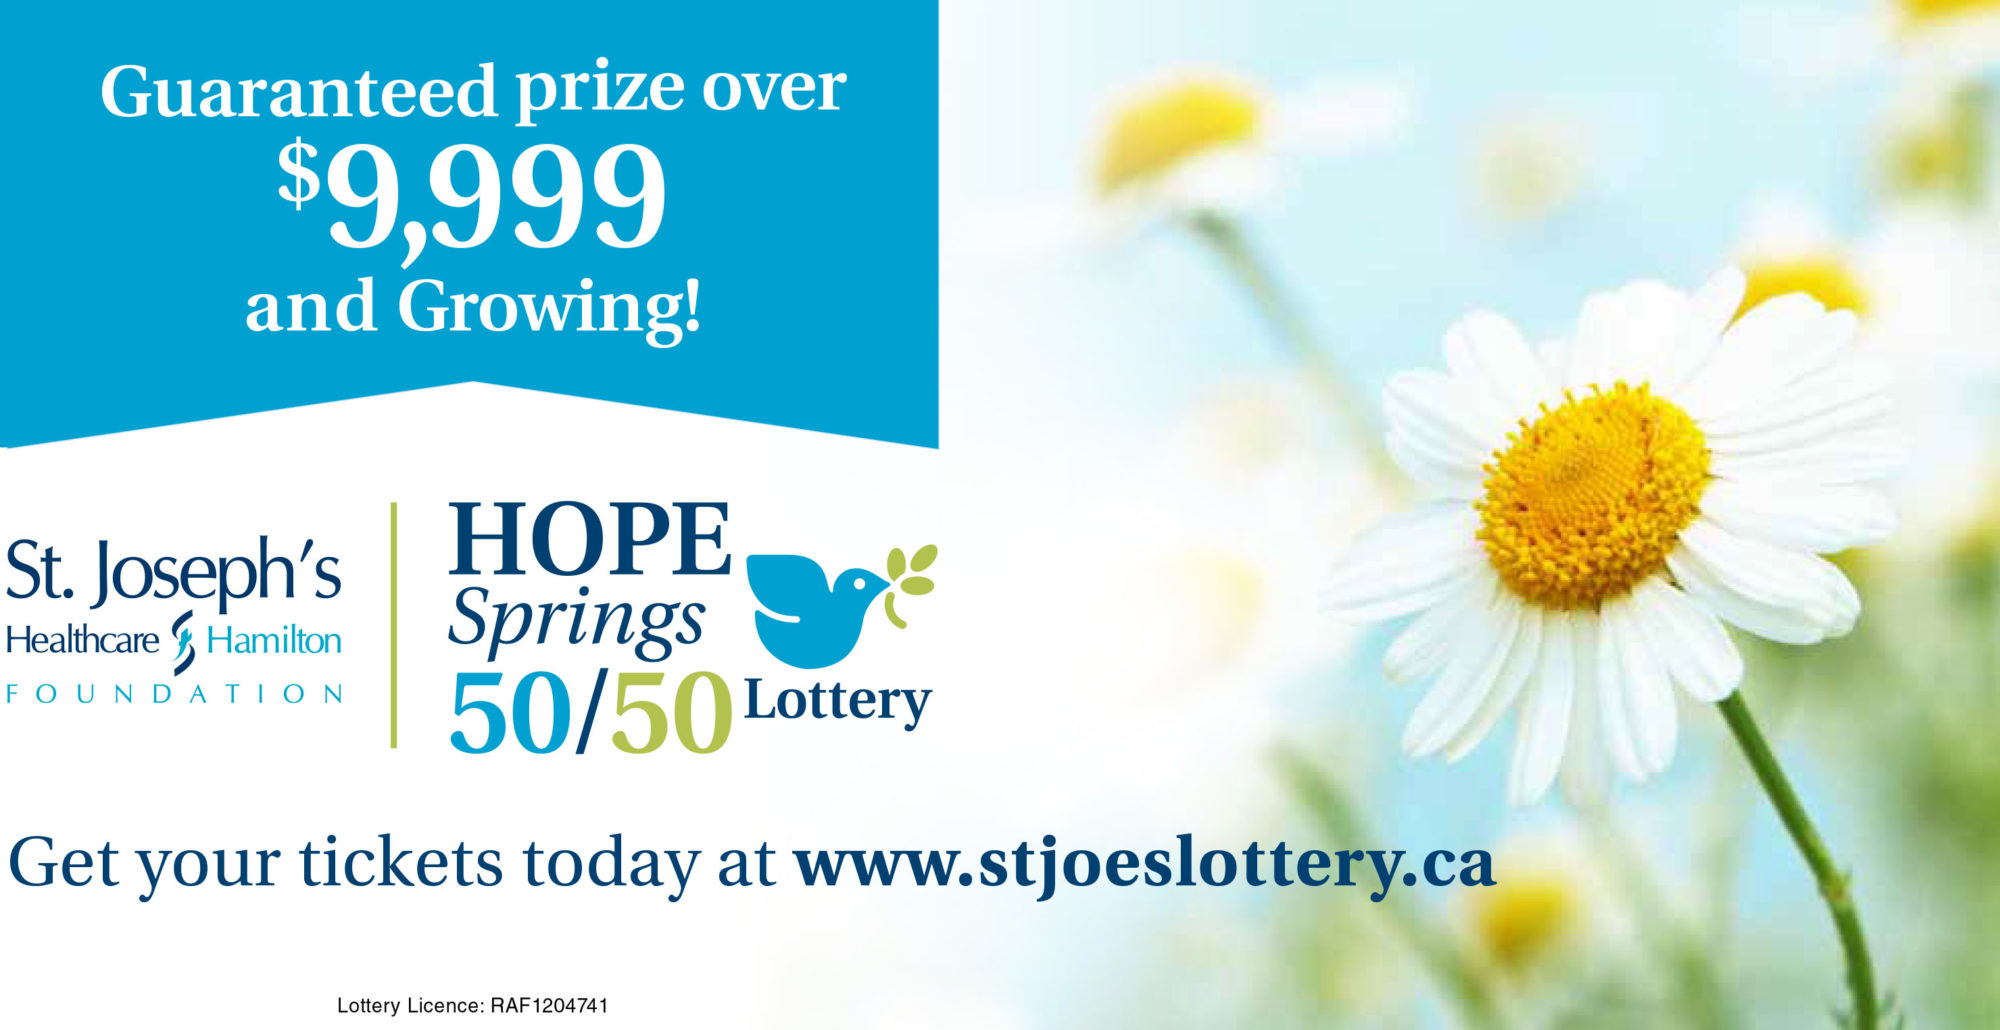 Hope Springs 50/50 Lottery